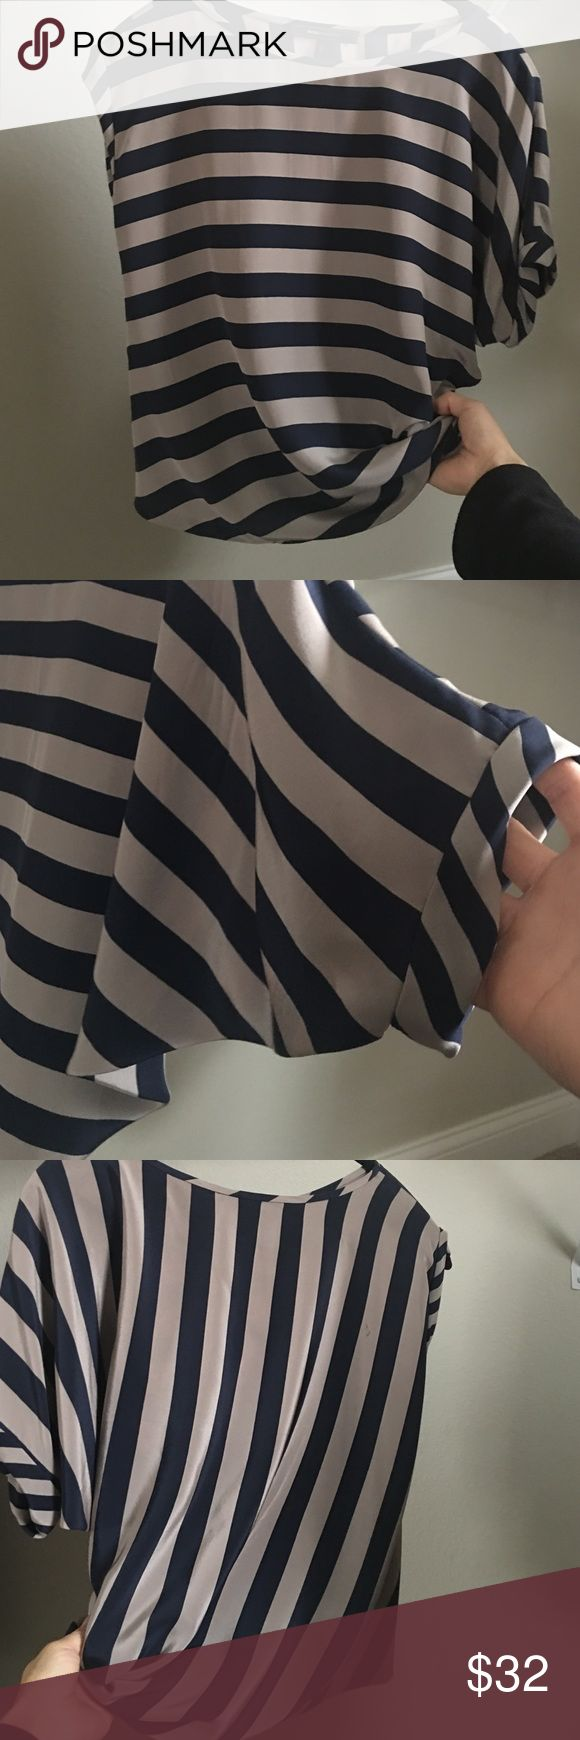 BCBGMaxAzria asymmetric top Navy and taupe stripes. Excellent condition. 100% silk. BCBGMaxAzria Tops Blouses